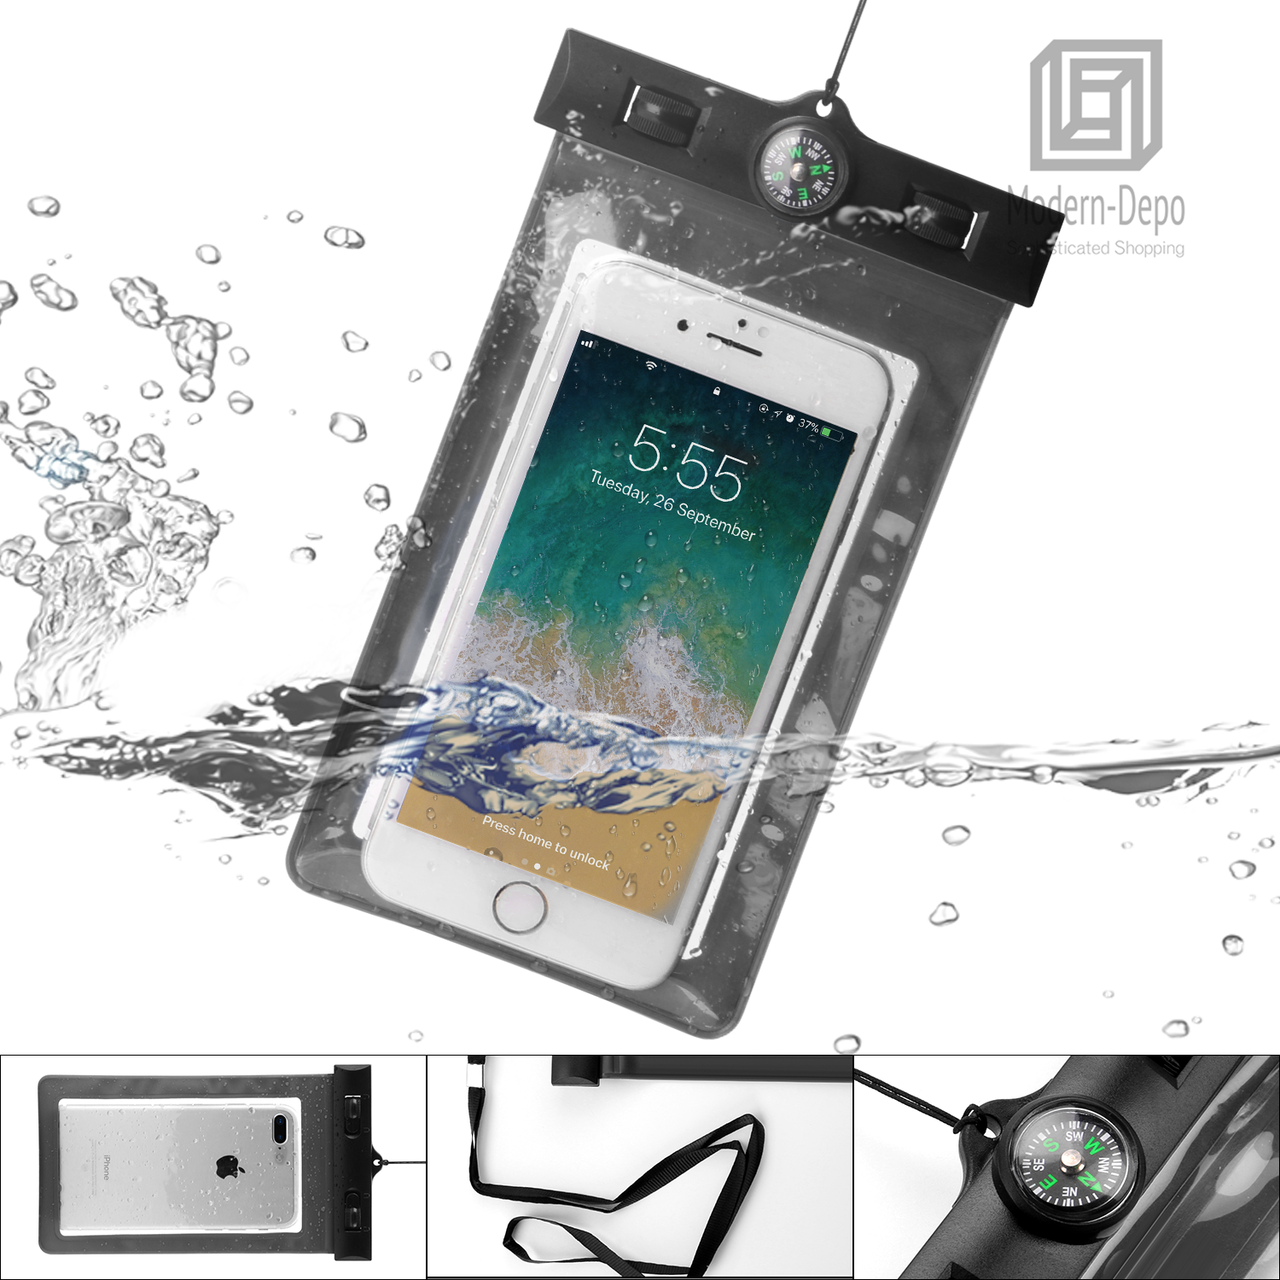 Universal Waterproof Case | Phone Case Anti-Water Pouch Dry Bag W/ Neck  Strap & Compass for iPhone X/8/8plus/7/7plus/6s/6/6s plus Samsung galaxy